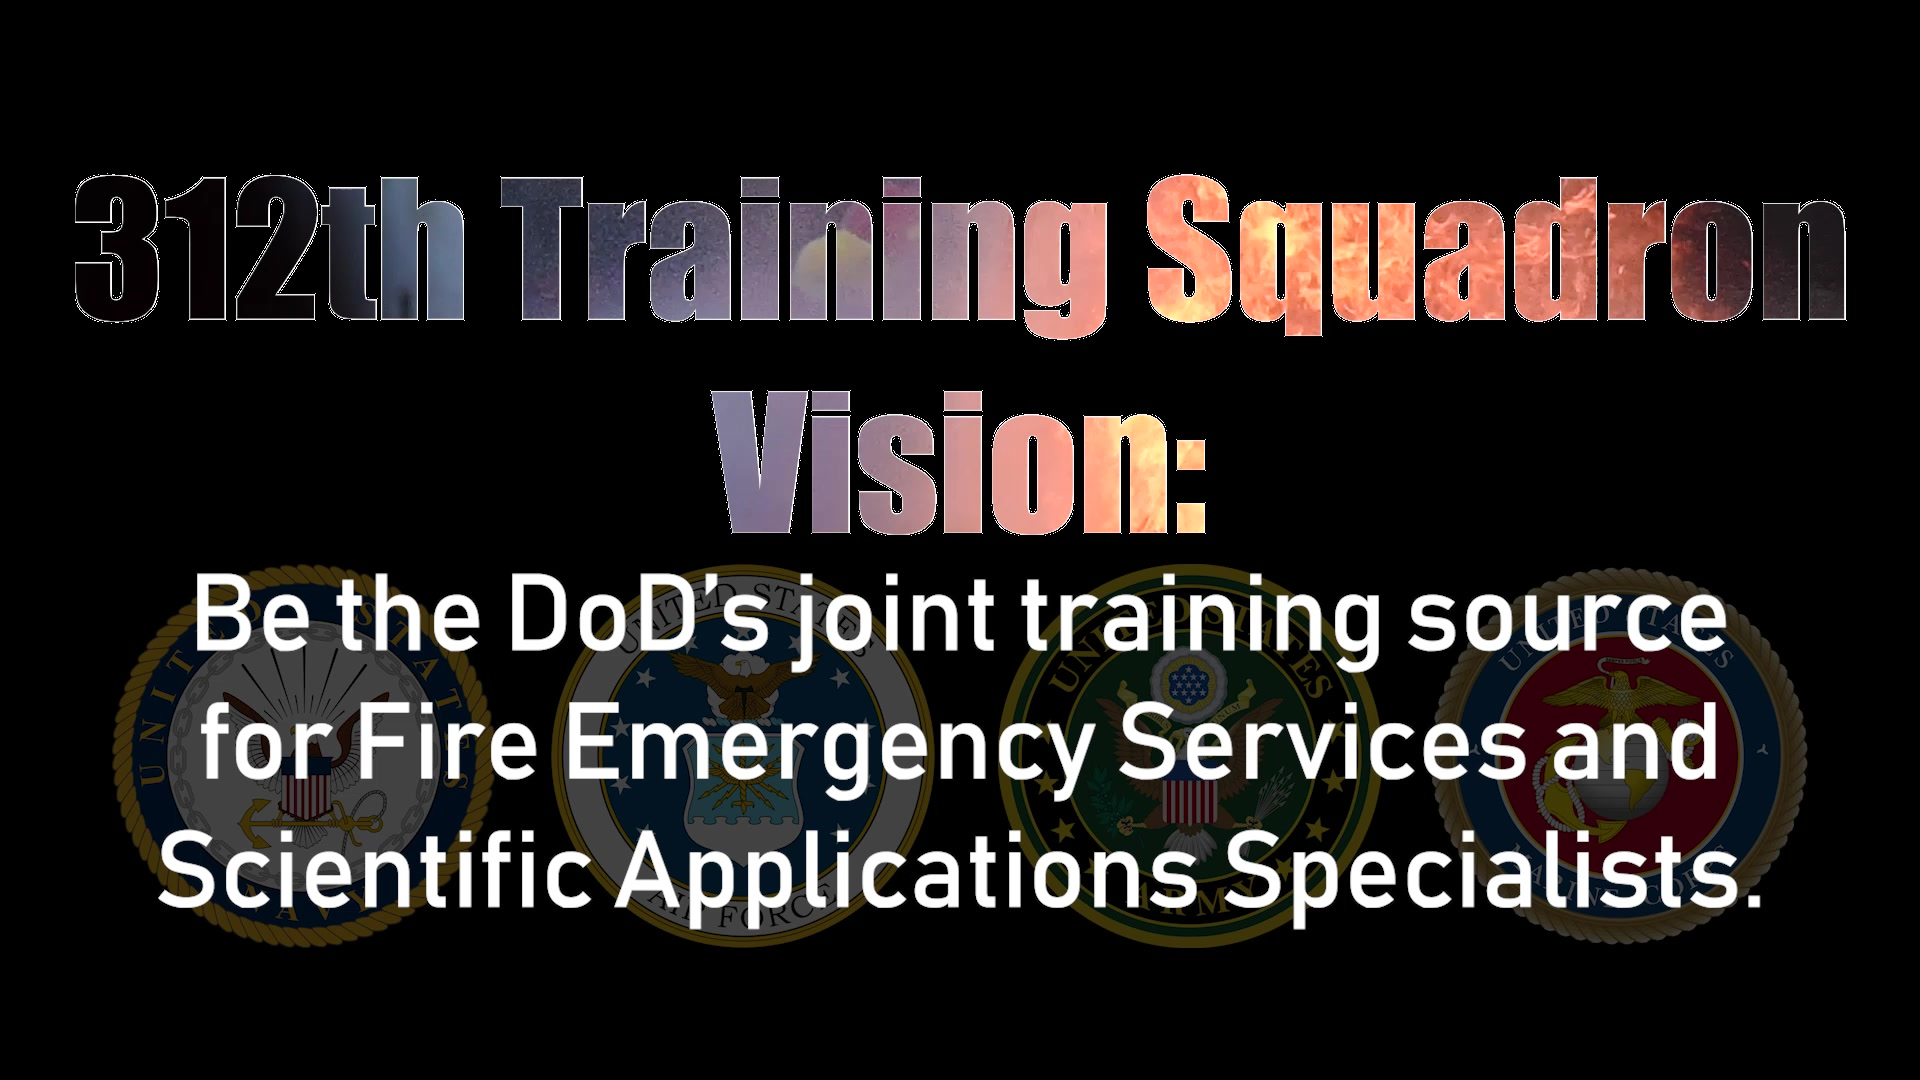 The 312th Training Squadron, a part of the 17th Training Group has a diverse mission.  They Train, Develop, and Inspire warriors to deliver Fire Emergency Services and Nuclear Treaty Monitoring for the DOD and our international partners.